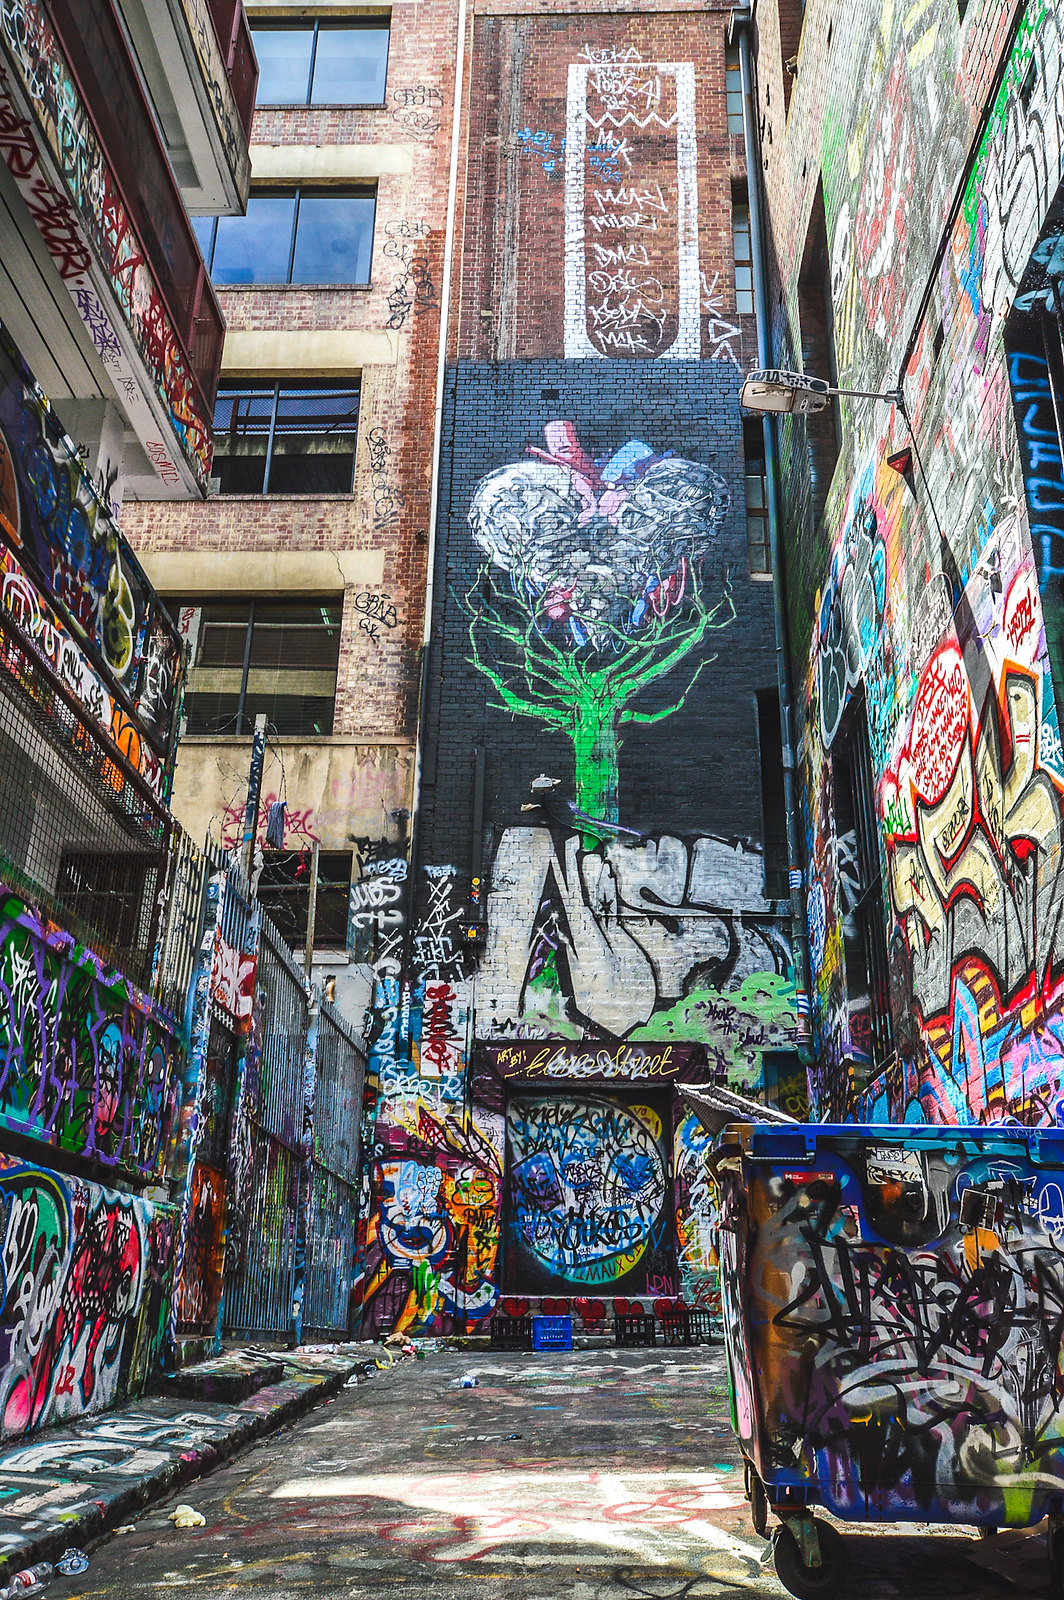 Melbourne Hossier Lane Street Art 2015